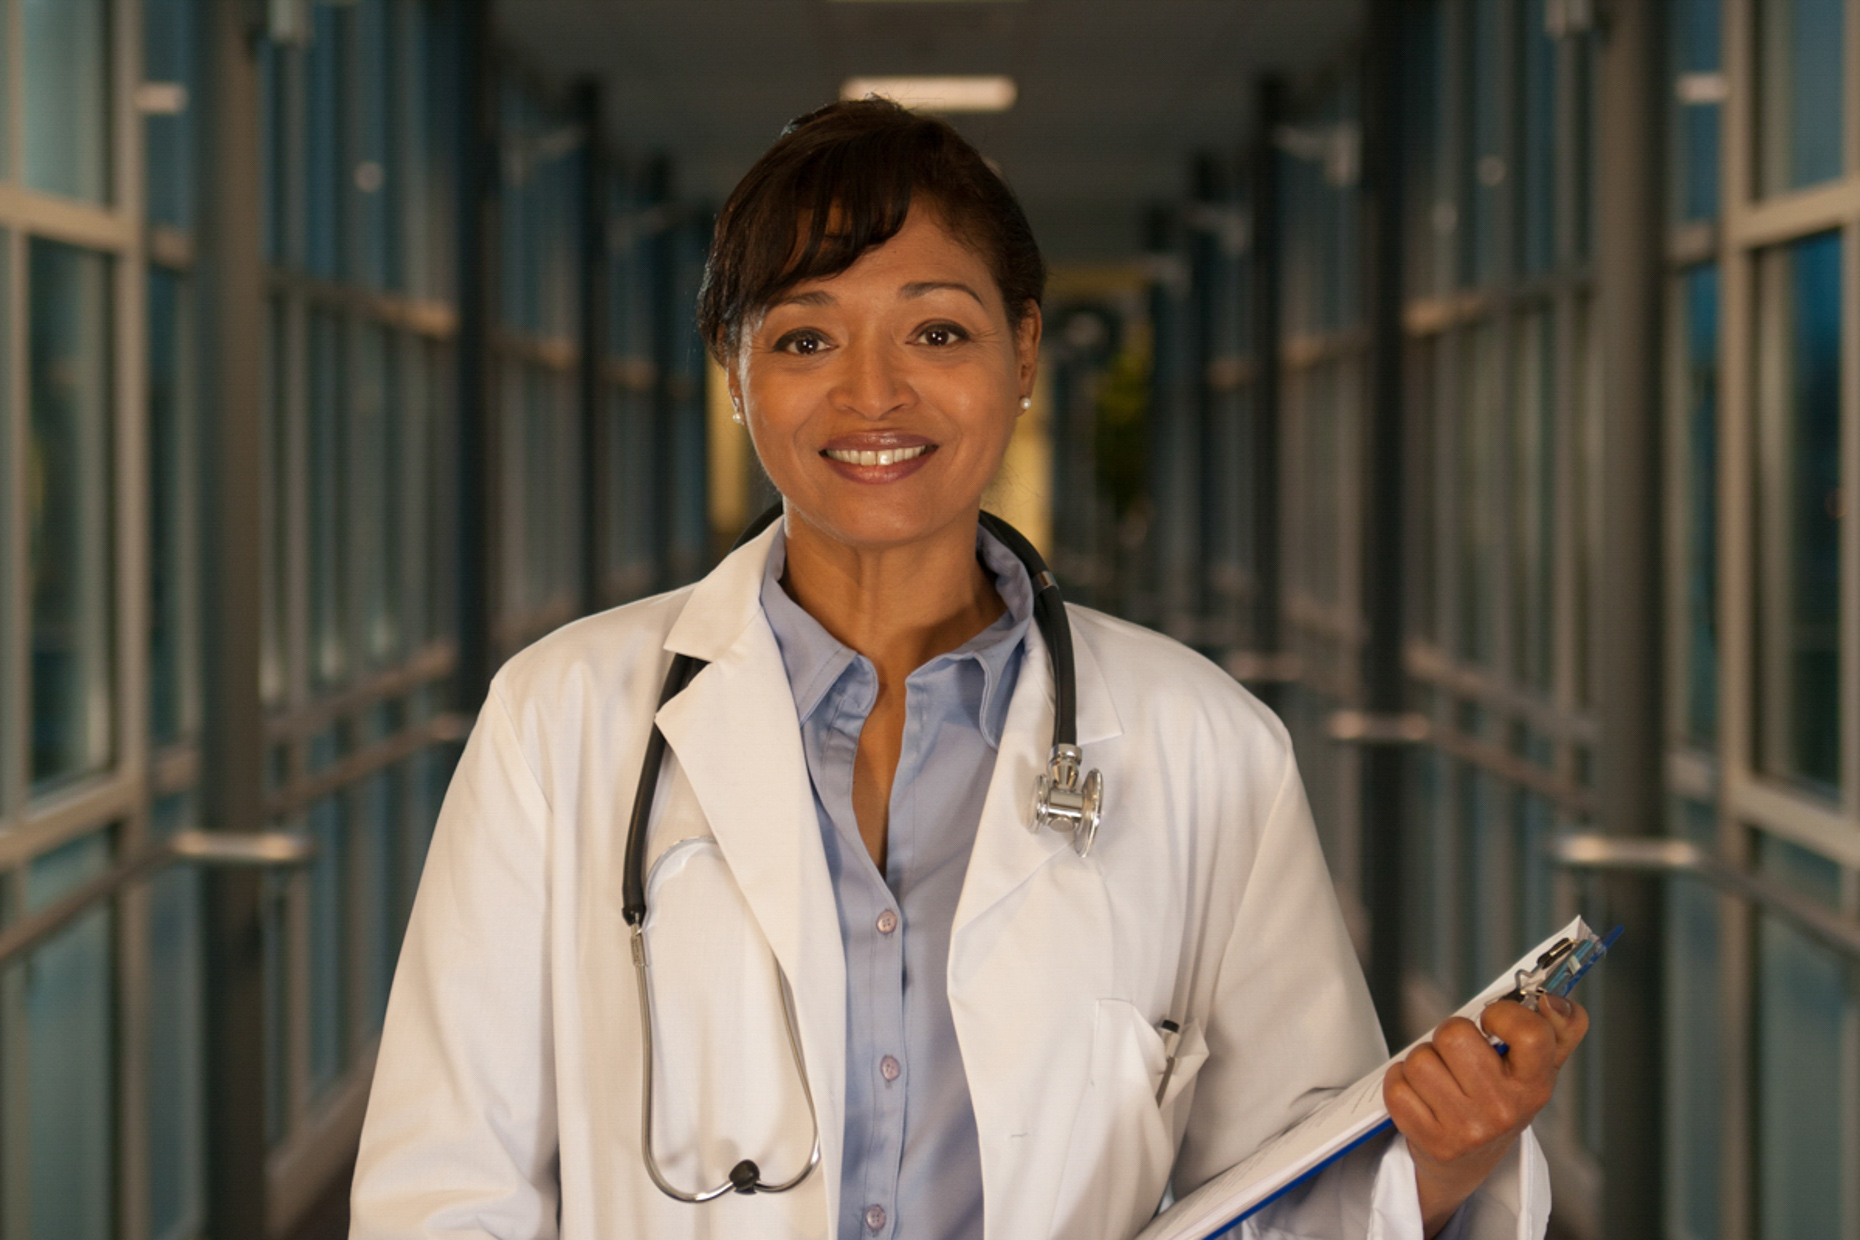 Photography-of-Doctors-and-Nurses-Caryn-B-Davis